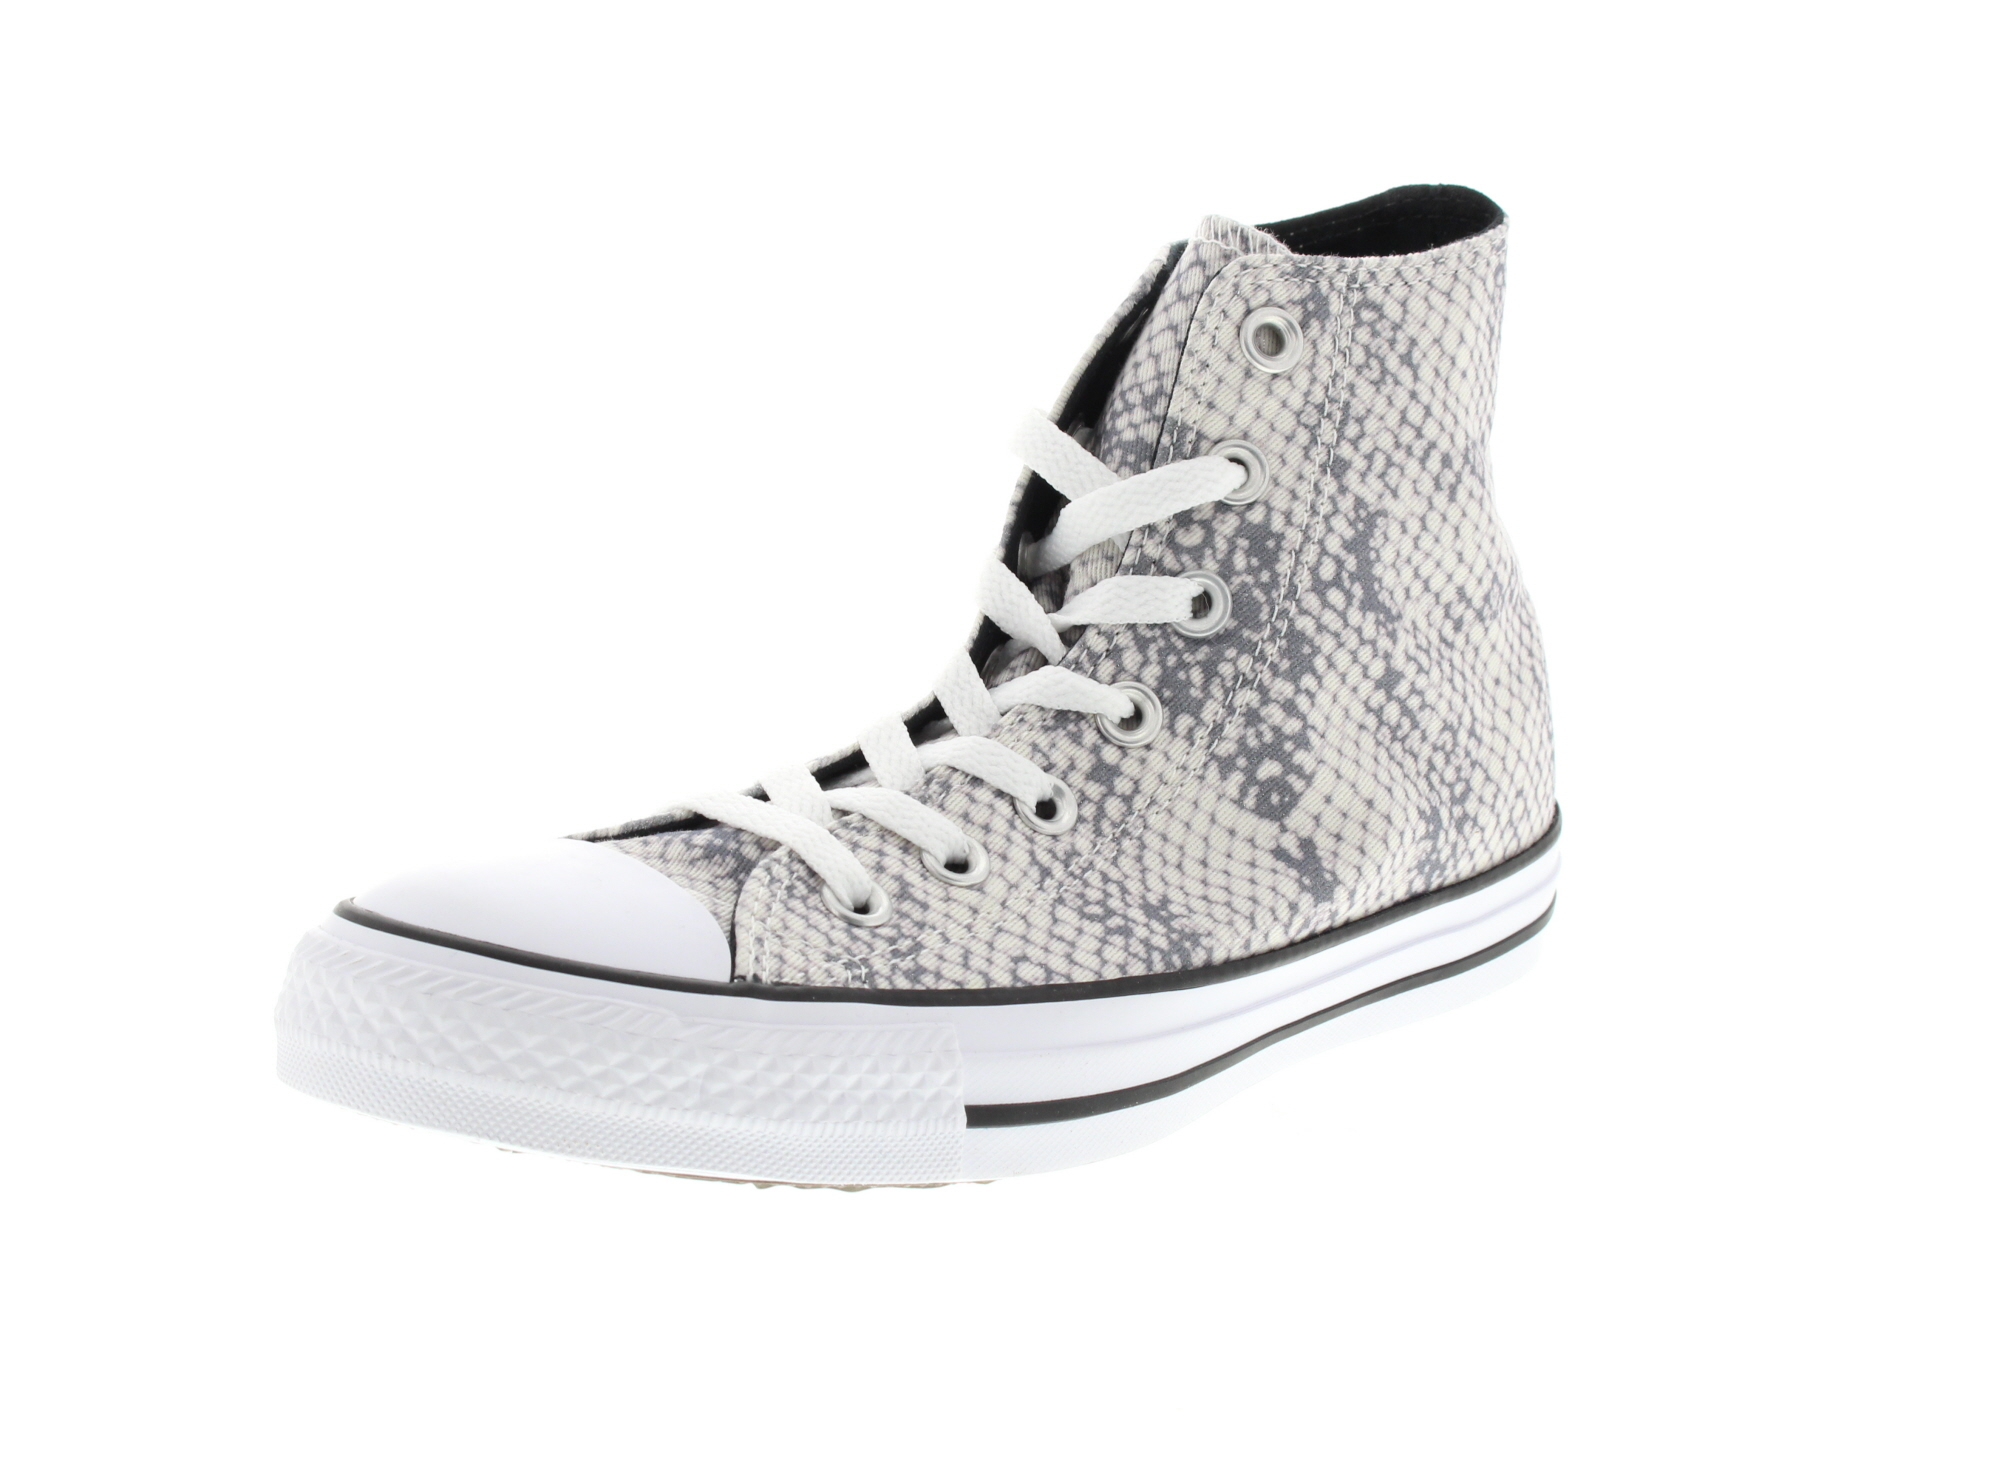 b84fcc0add9ba9 ... shoes latest styles 271bb ad5dd  inexpensive converse schuhe sneaker  ctas hi 557915c white cool grey0 d2a27 e4beb